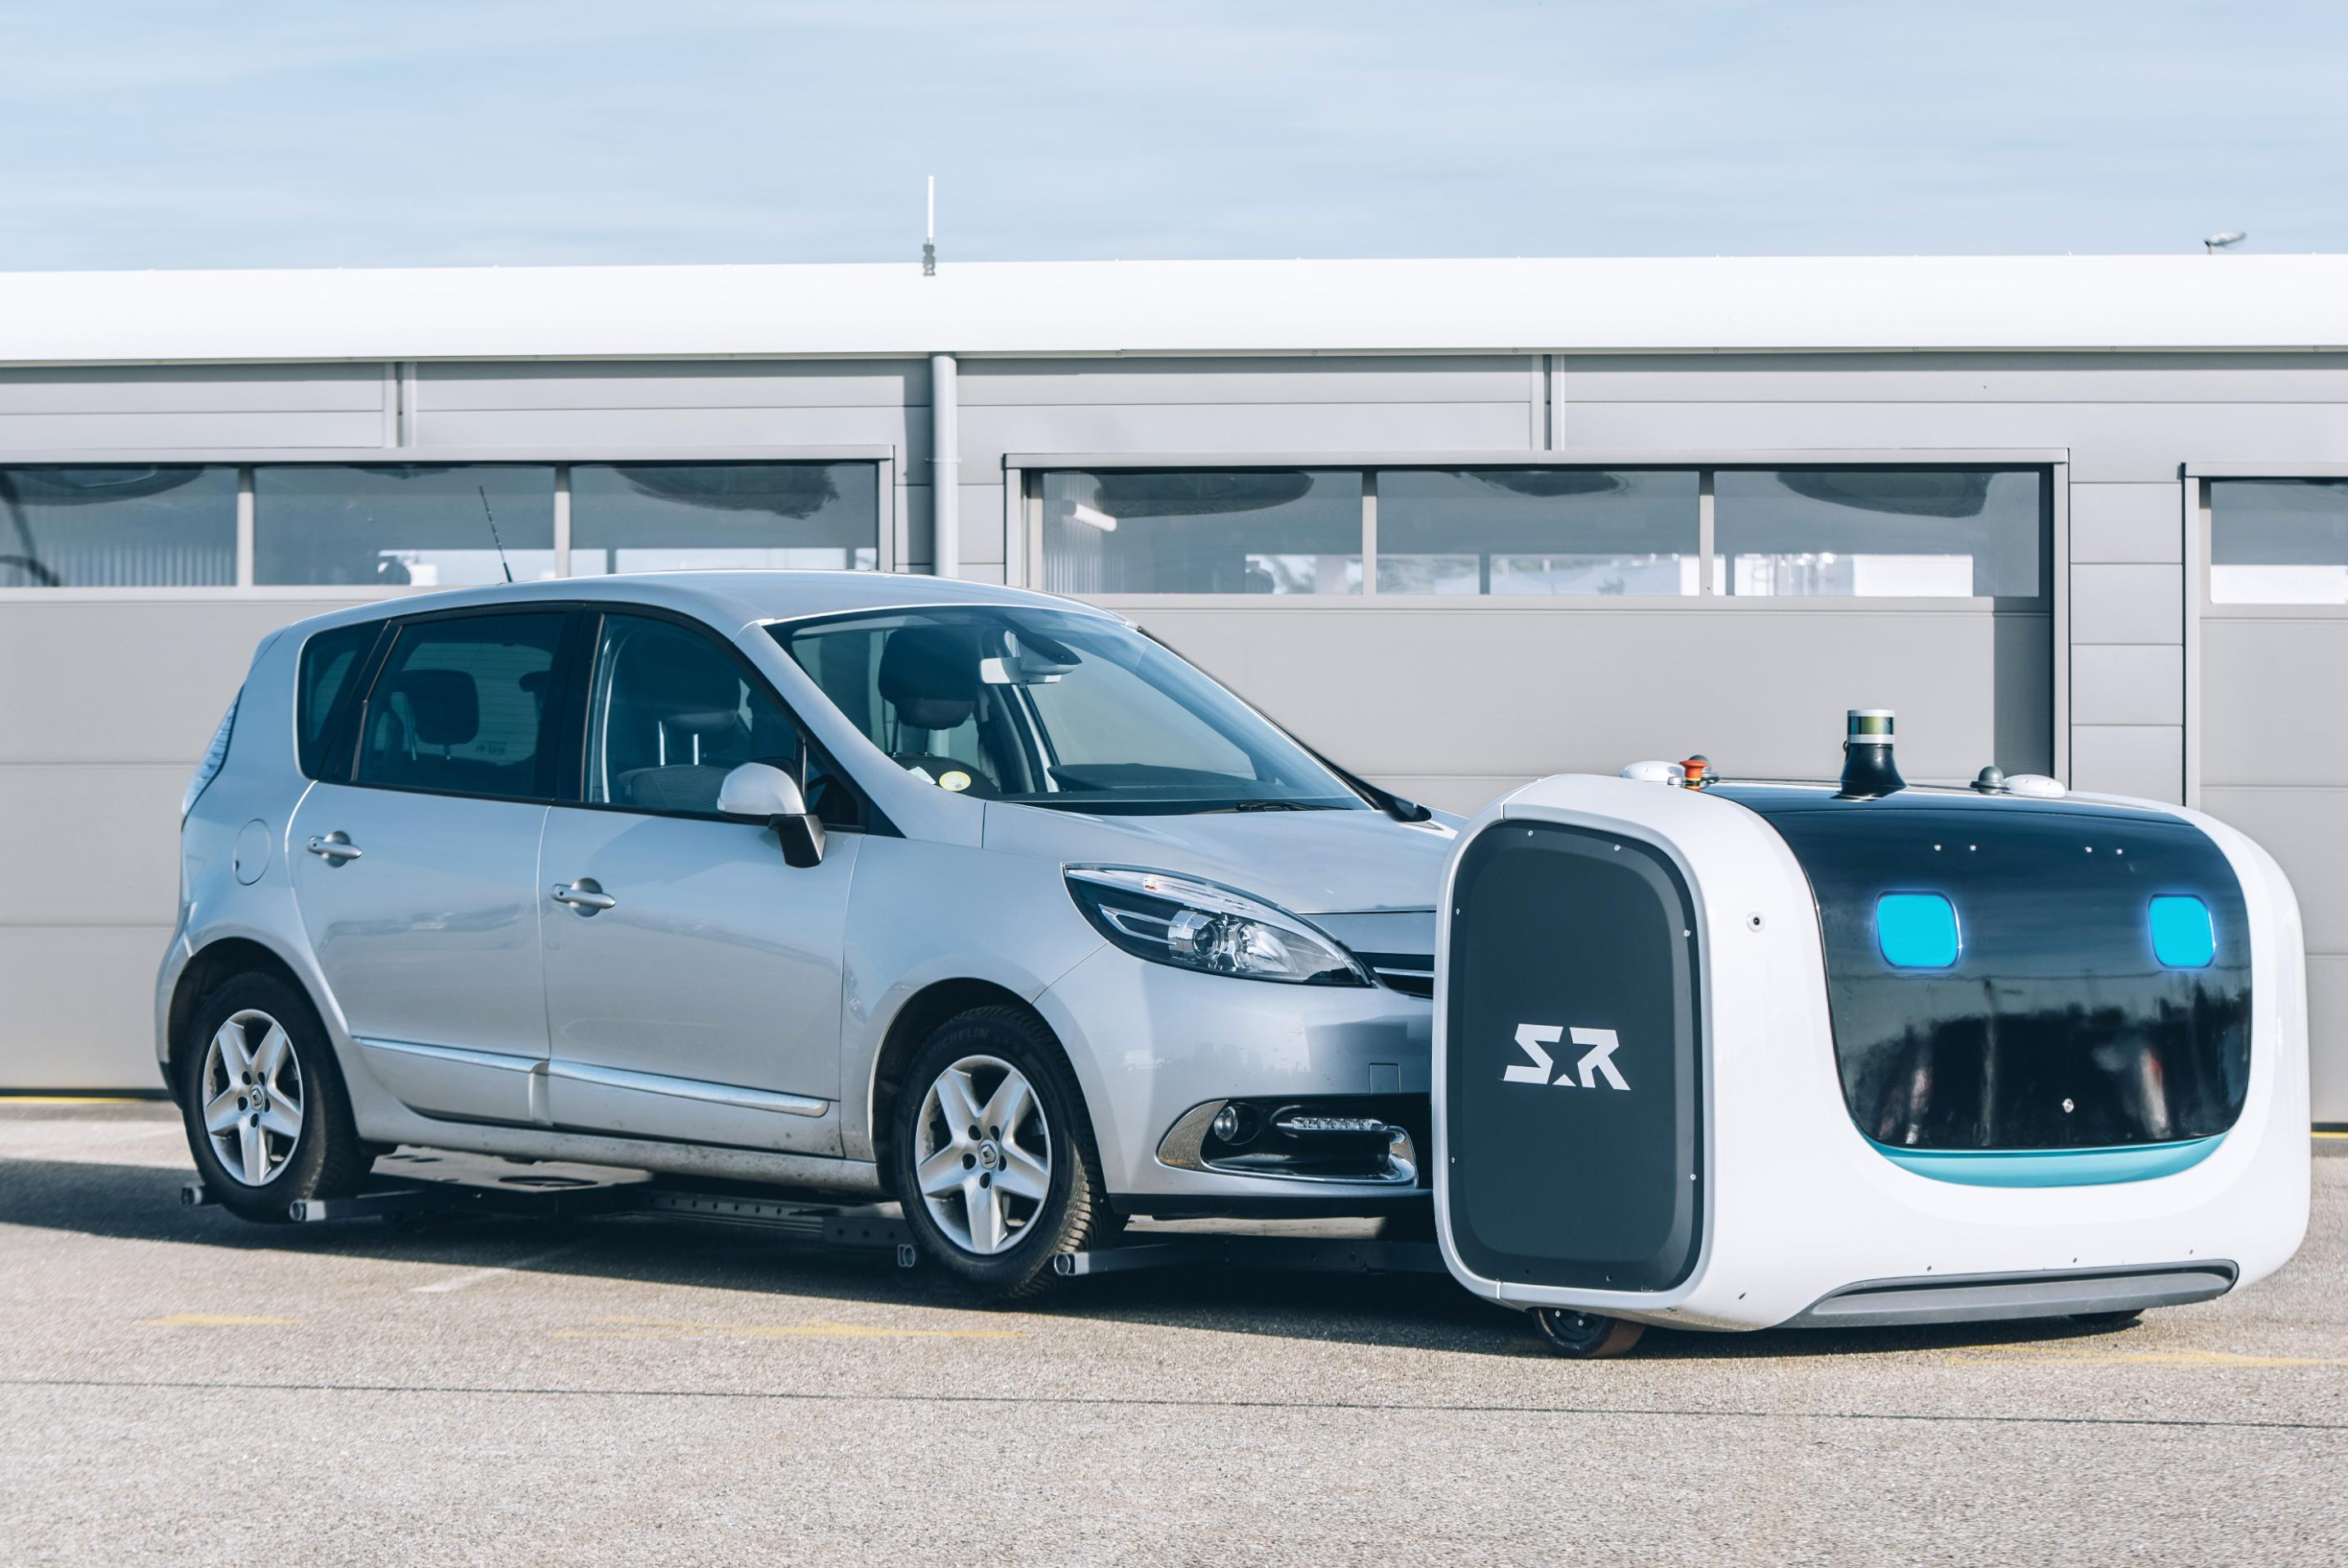 This Robot Named Stan Can Park Your Car At The Airport